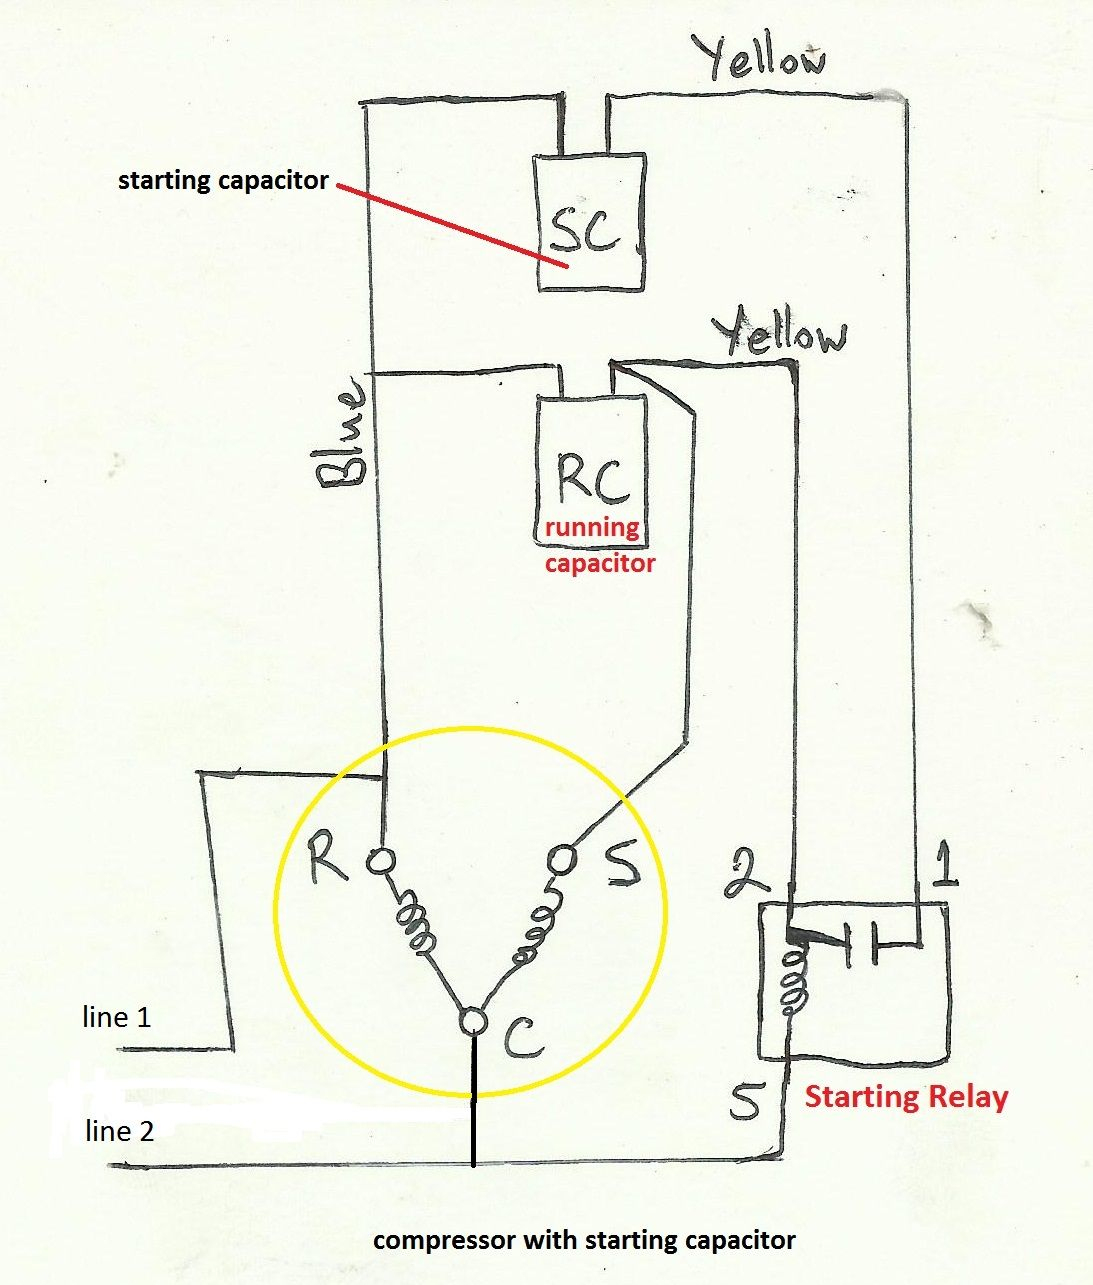 Ac Wiring Diagram - Today Wiring Diagram - Central Air Conditioner Wiring Diagram